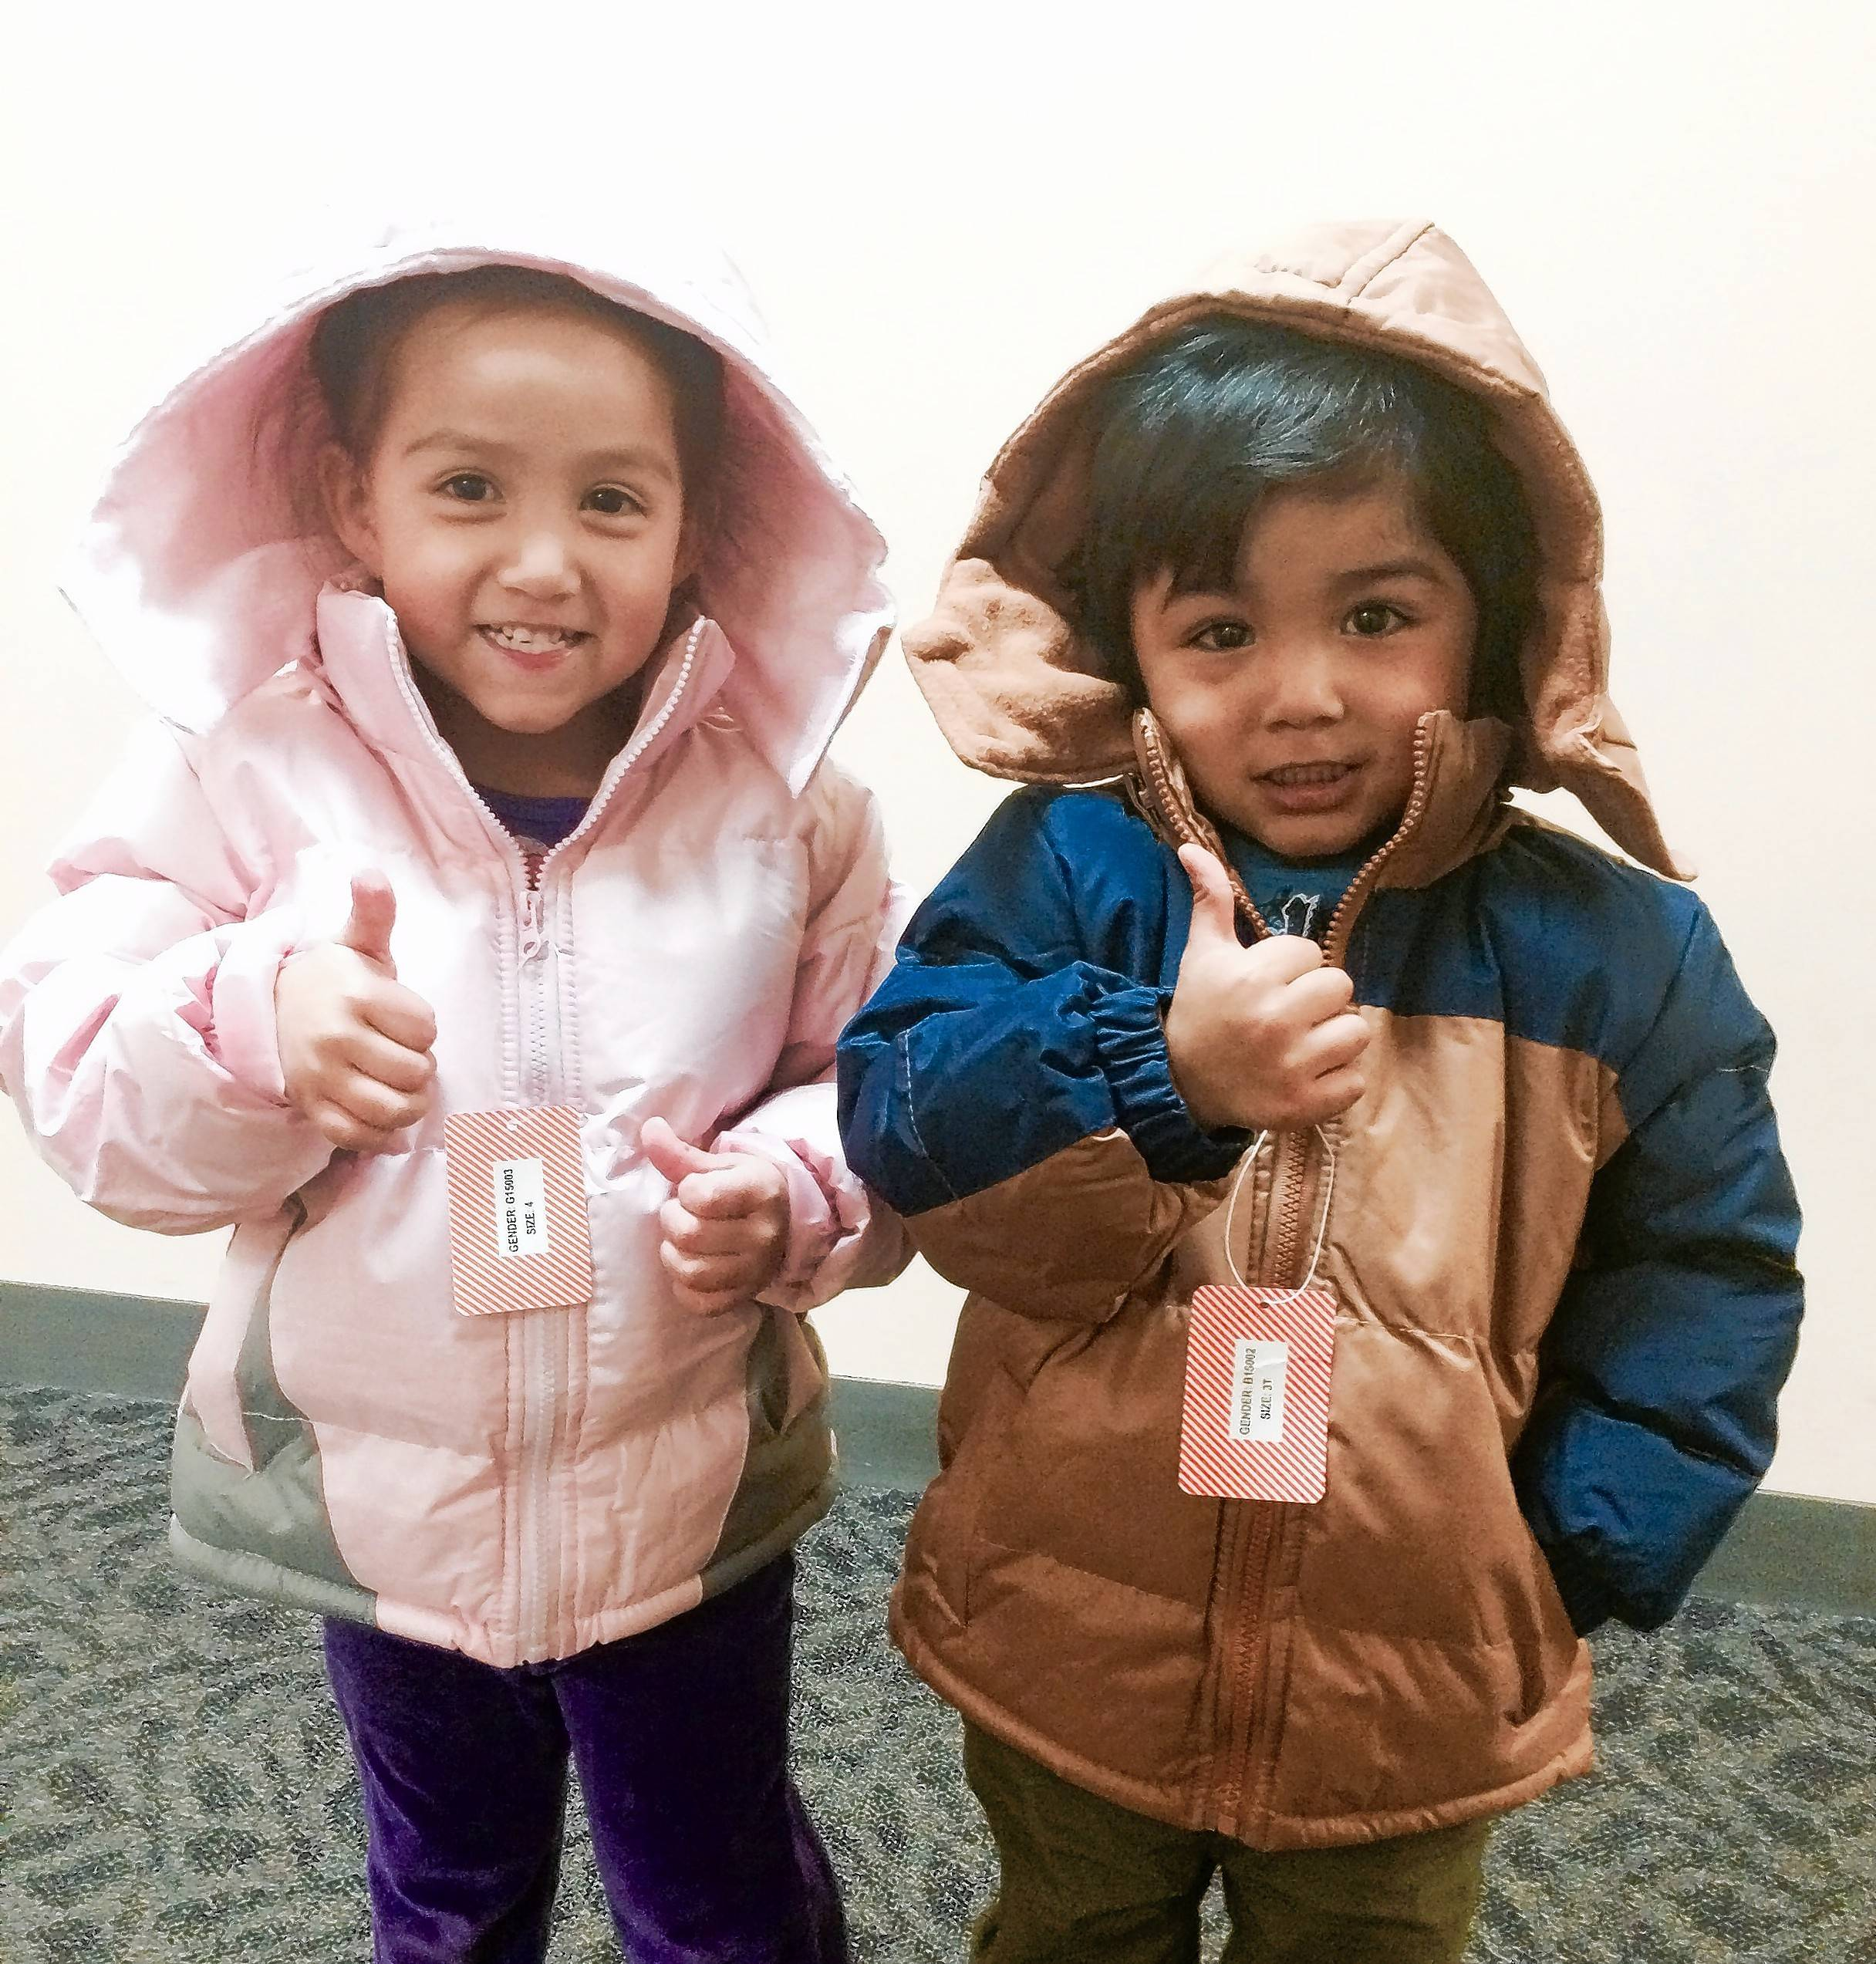 These are two of the recipients of the 400 new coats handed out earlier this month by Woodfield Area Children's Organization secretary Linda McGill as part of the annual New Coats for Kids program.